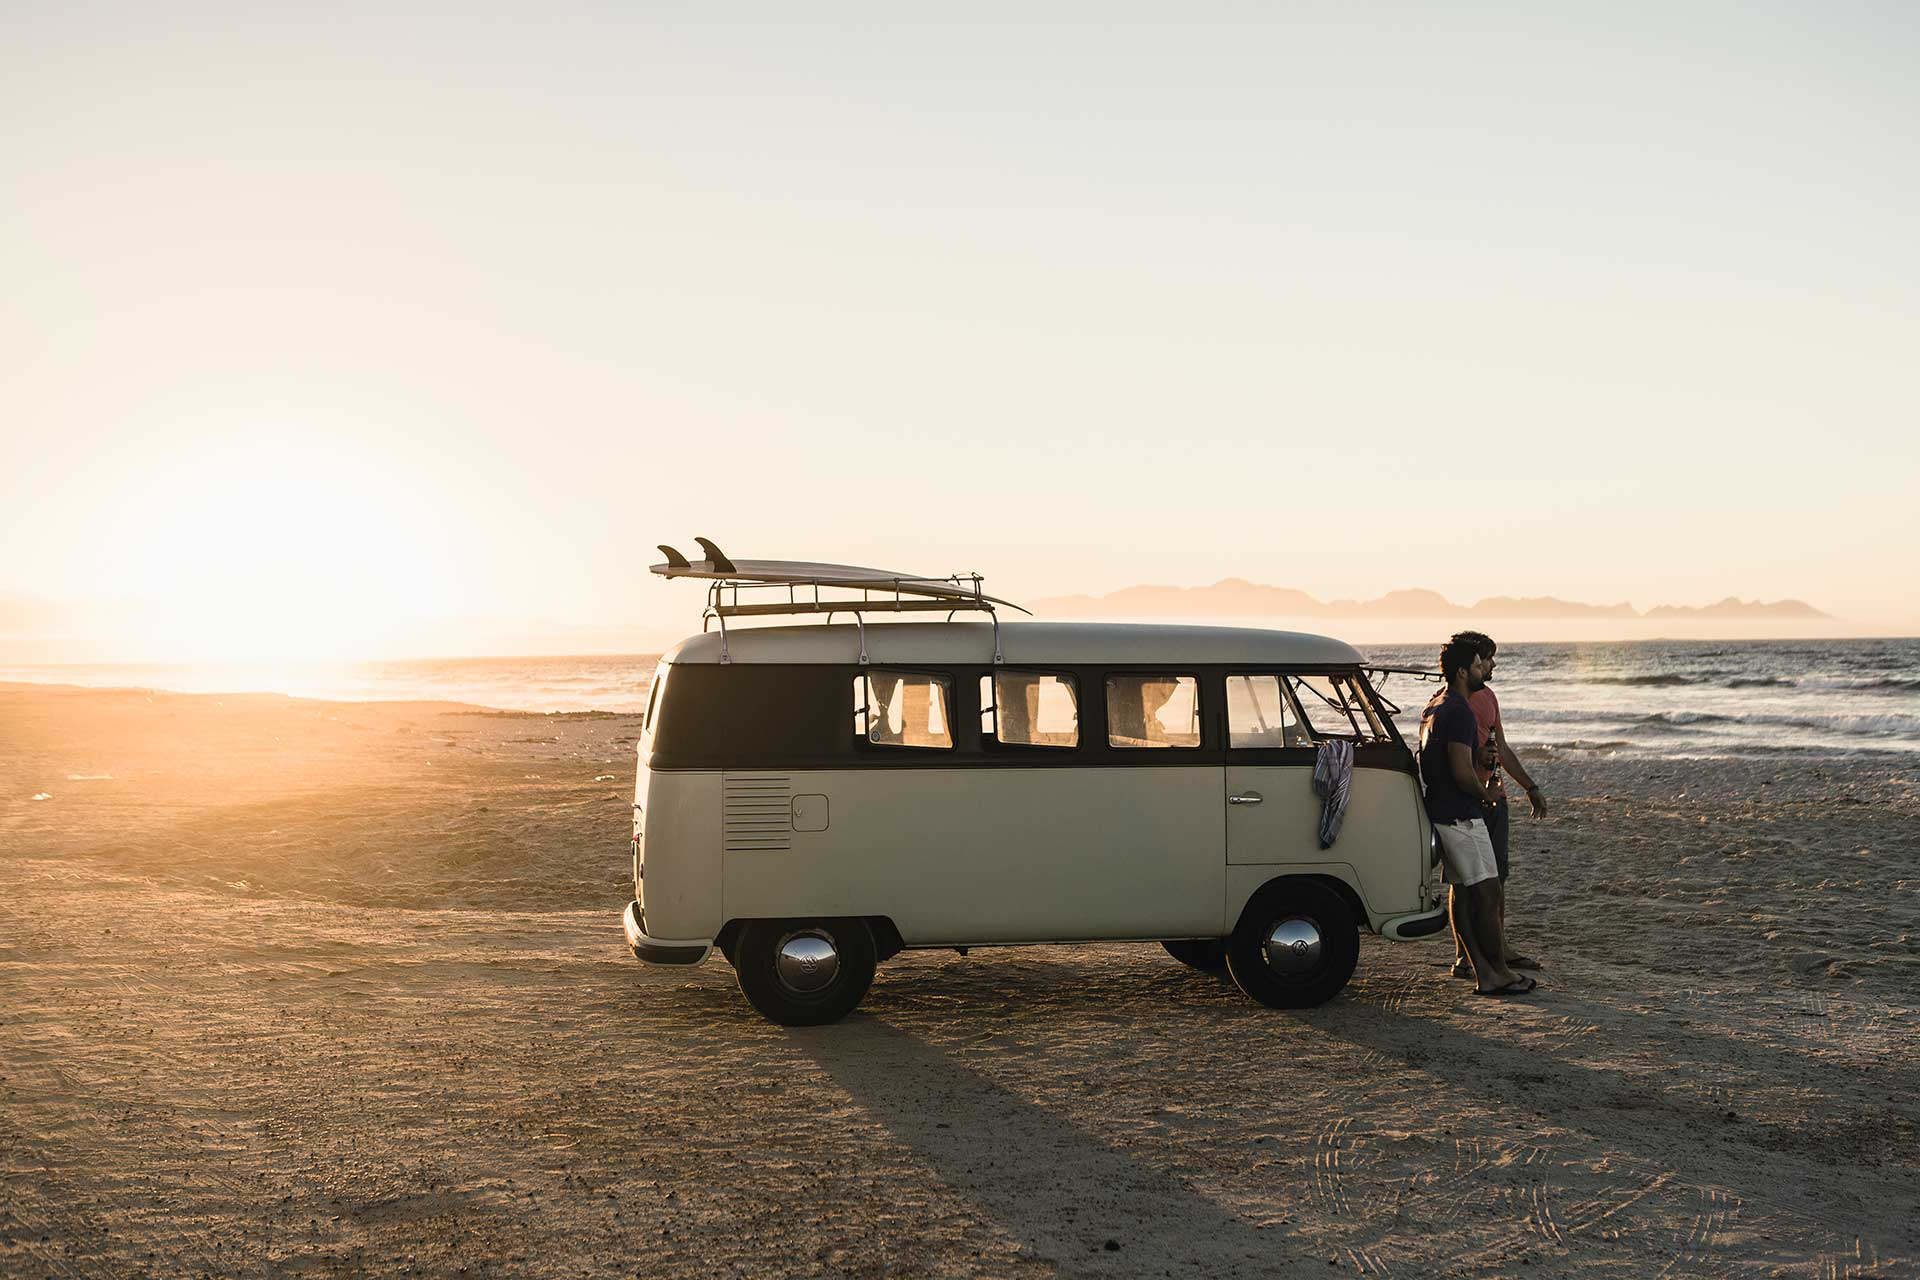 Vanlife Camping Lifestyle People Fotograf Fotoproduktion Outdoor Strand London